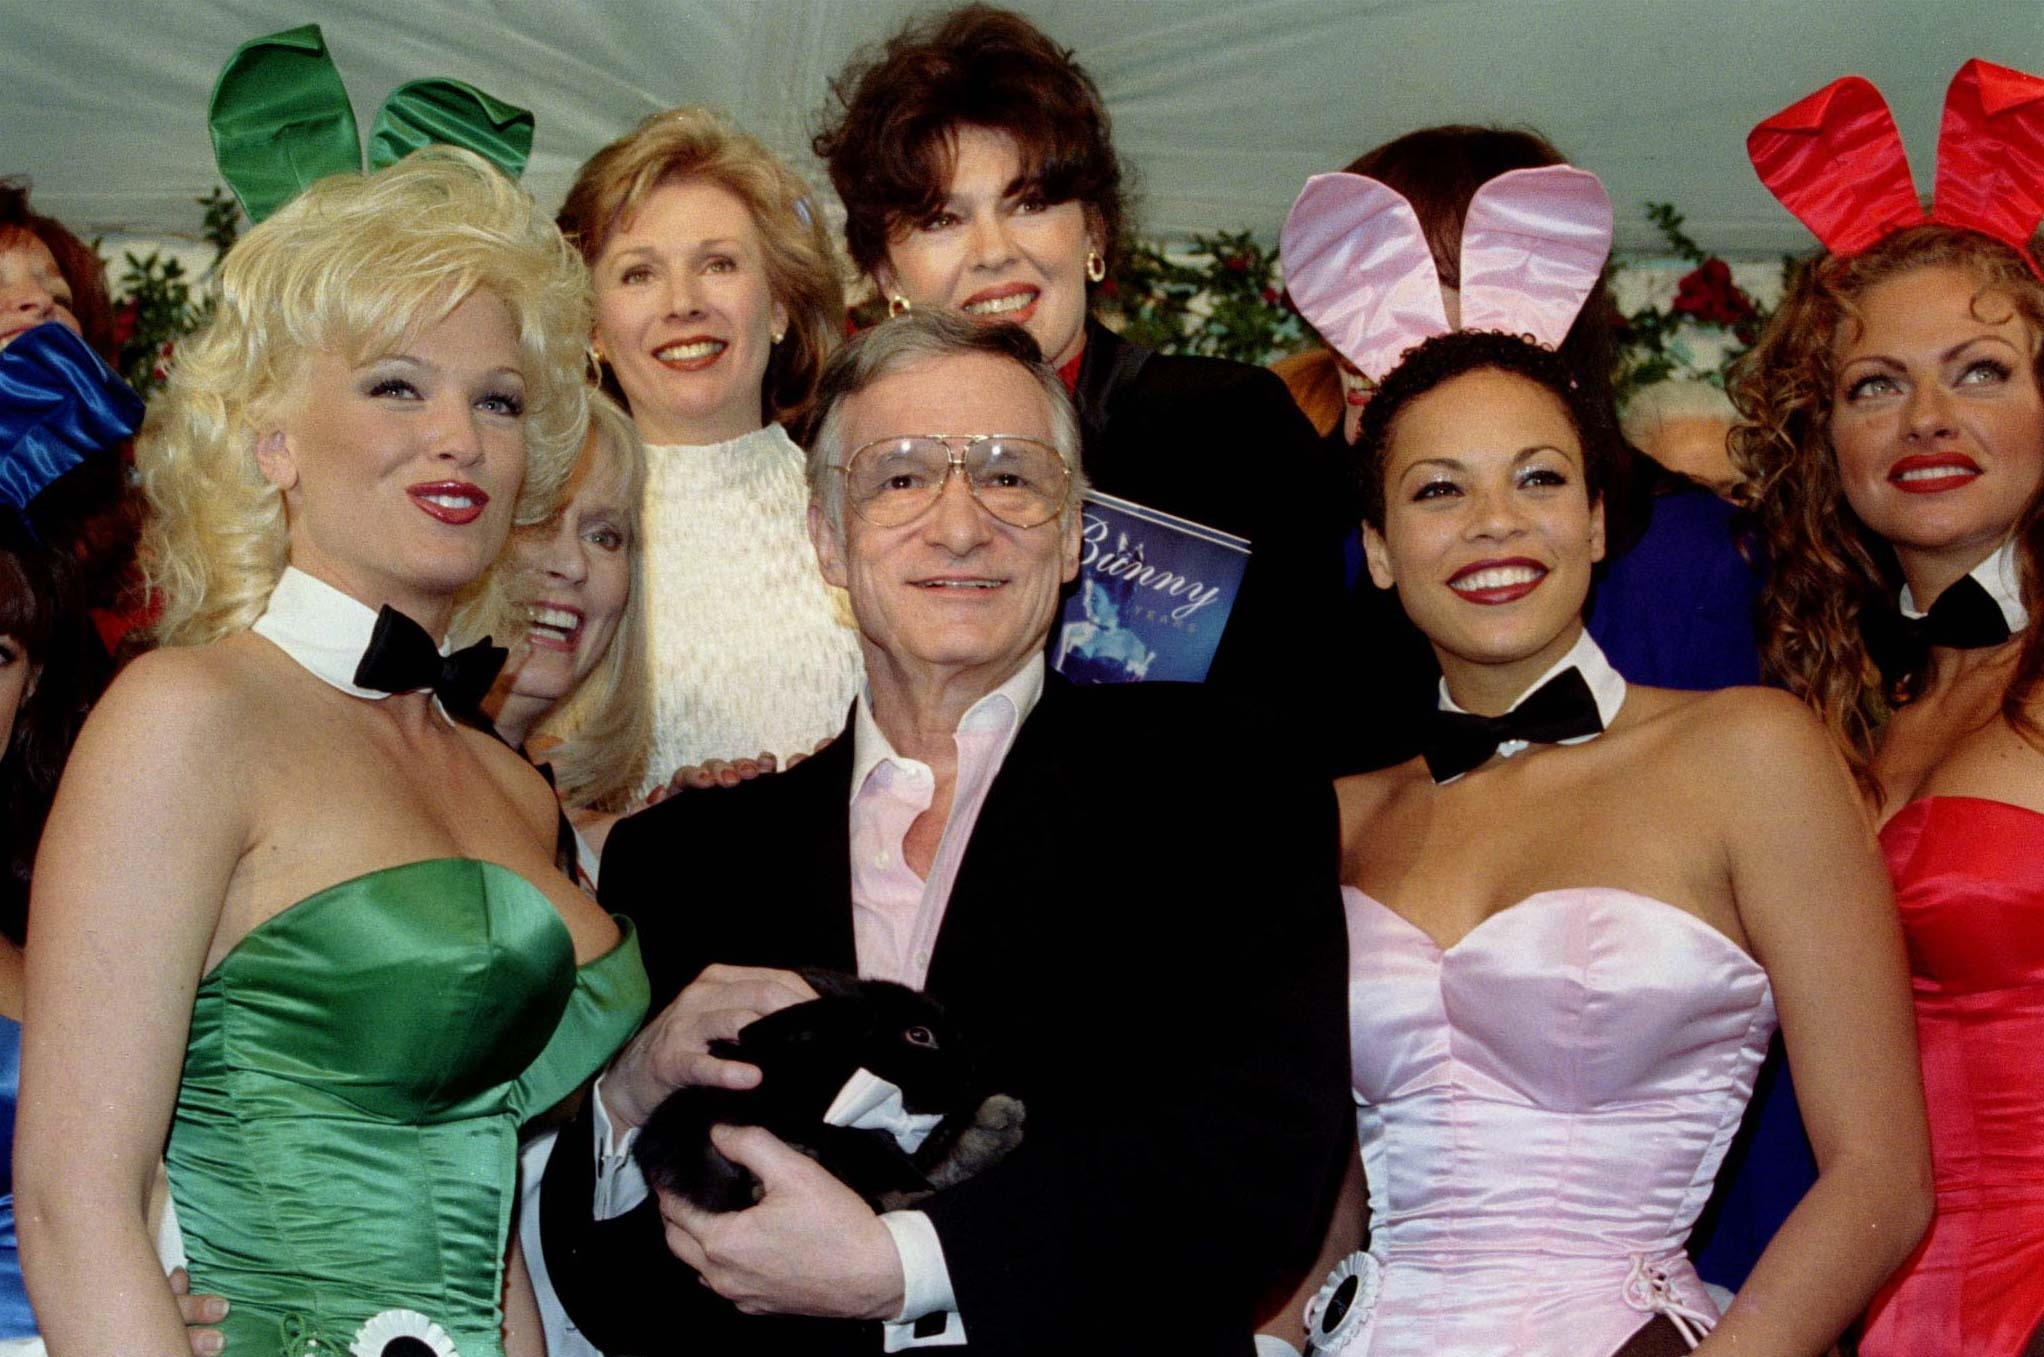 Hugh Hefner (C) , founder and publisher of Playboy magazine, is surrounded by former and present Playmates, as he holds a pet rabbit given to him for his 72nd birthday, April 9, at the Playboy Mansion in Los Angeles. Hefner was a struggling young magazine copywriter in 1953 when he turned a $600 investment and a picture of Marilyn Monroe into one of the most successful publishing empires in history. - RTXIFAD